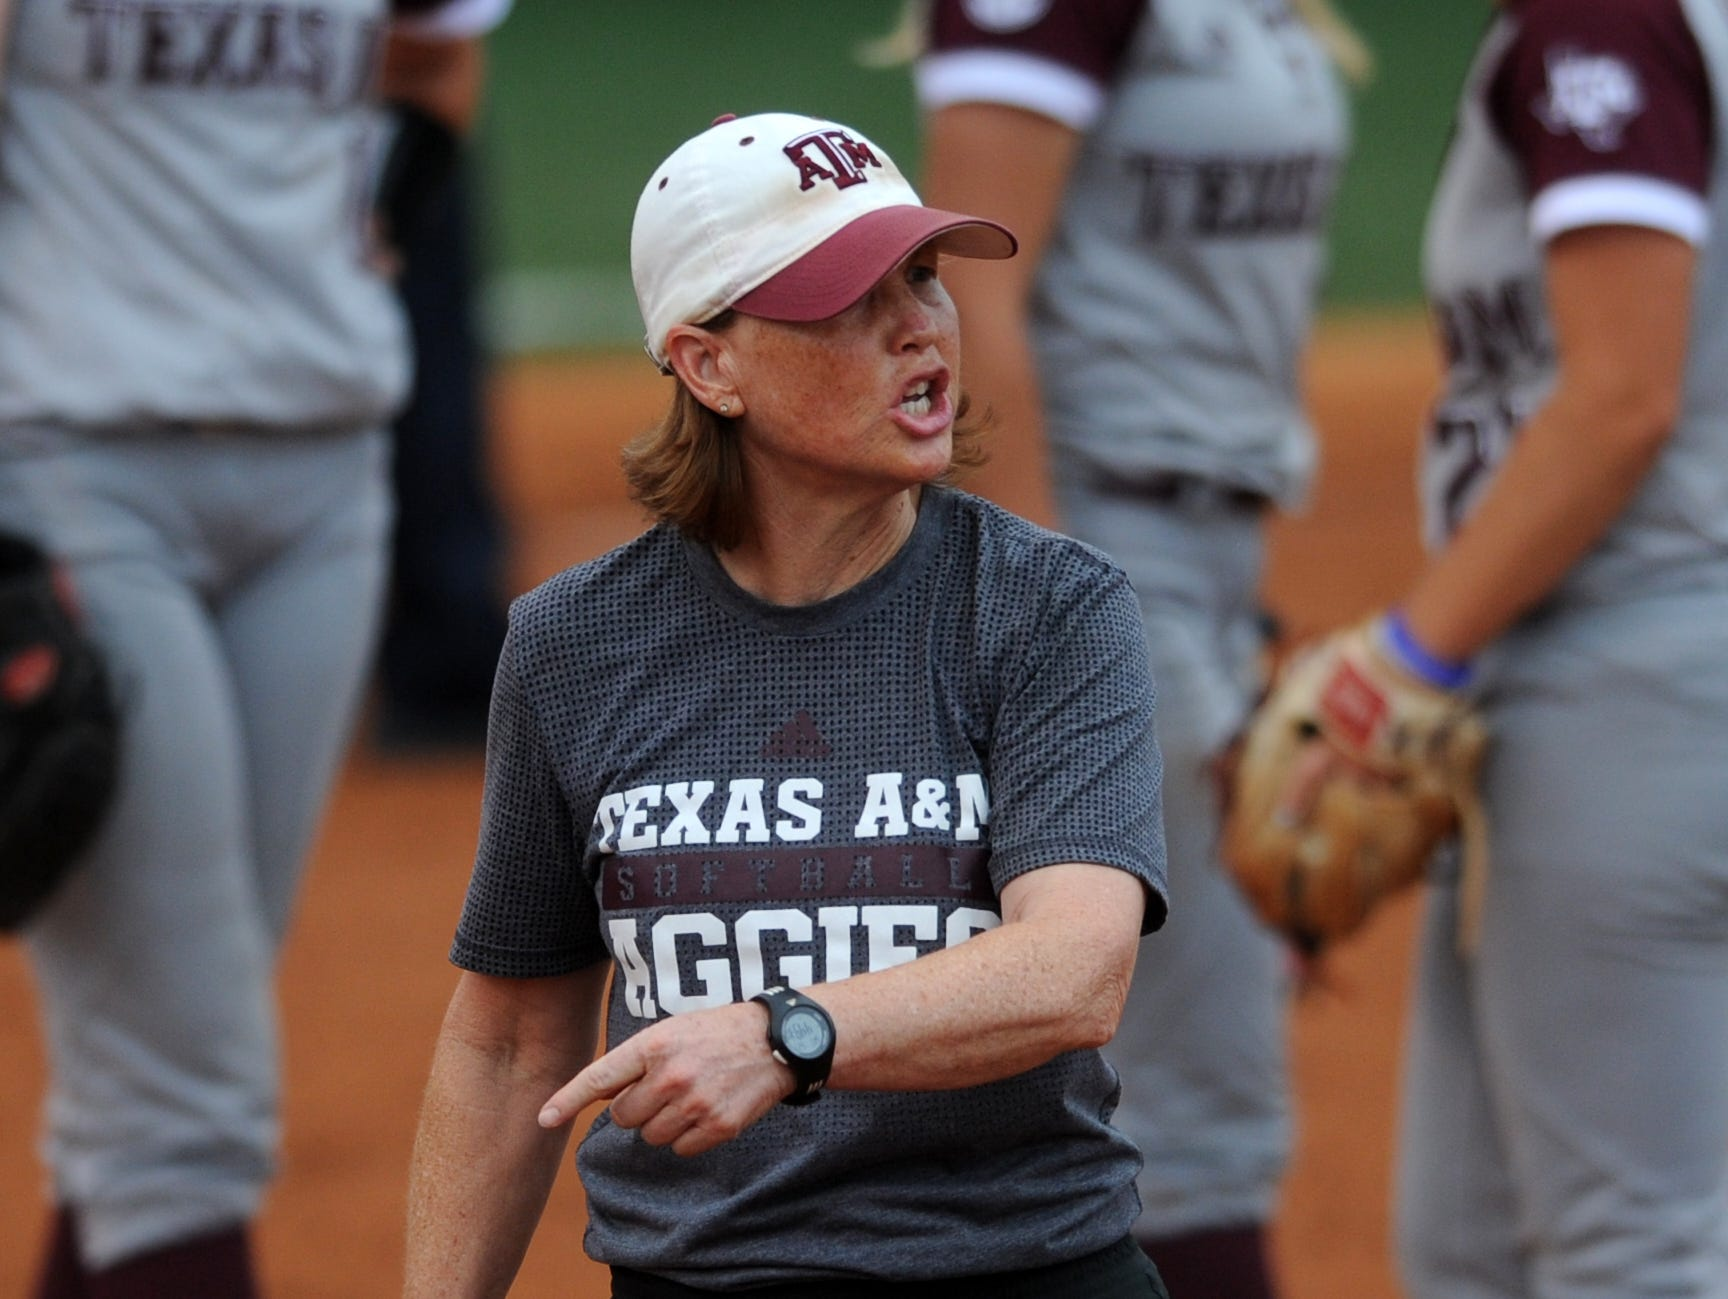 Texas A&M's head coach Jo Evans walks onto the field to dispute a call during a NCAA Super Regional game between Tennessee and Texas A&M at Sherri Parker Lee Stadium on Saturday, May 27, 2017. Texas A&M defeated Tennessee 6-5.